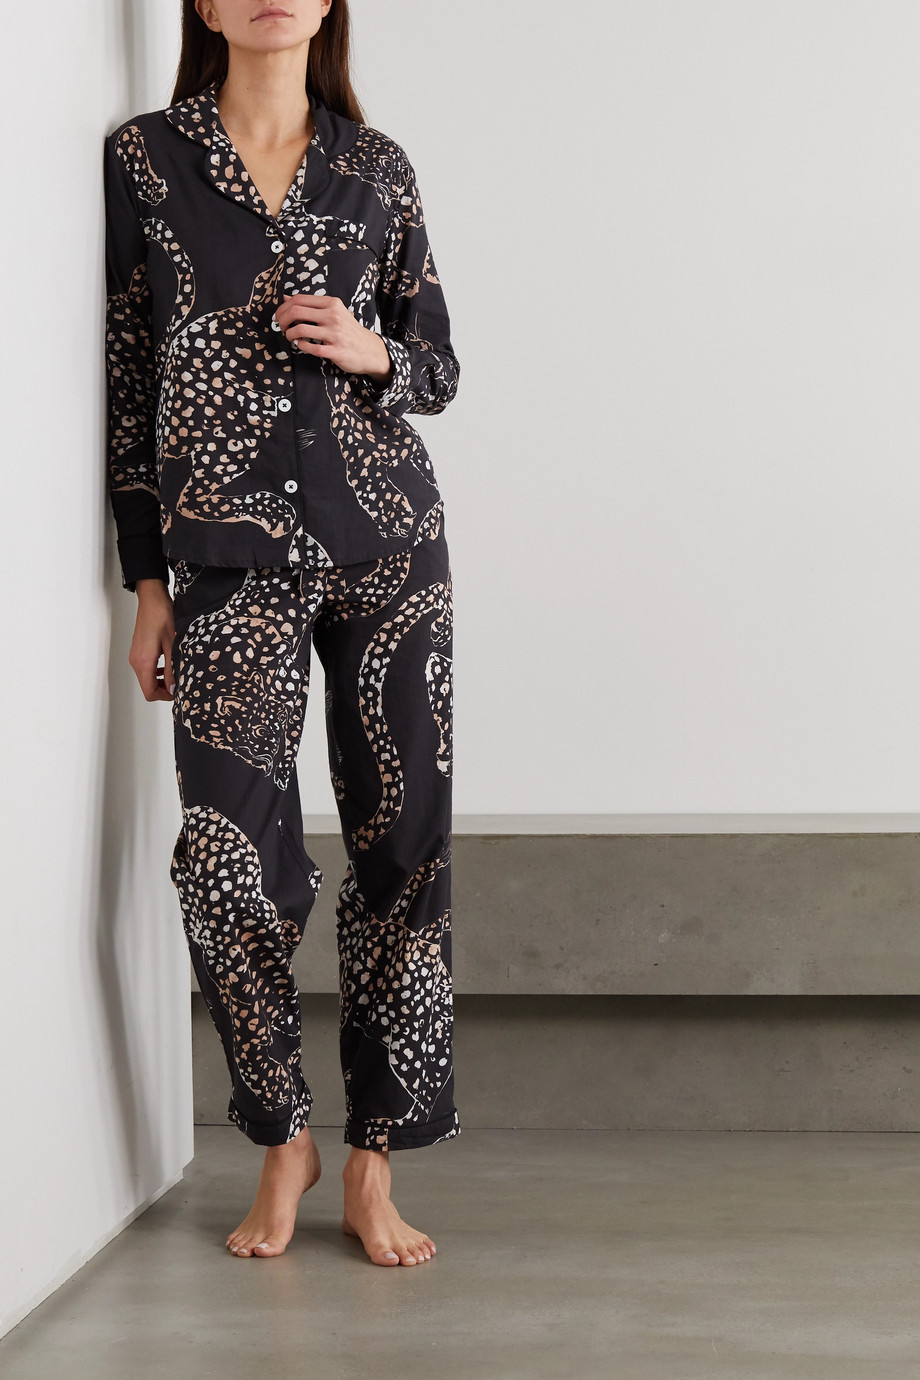 DESMOND & DEMPSEY Jag animal-print organic cotton pajama set